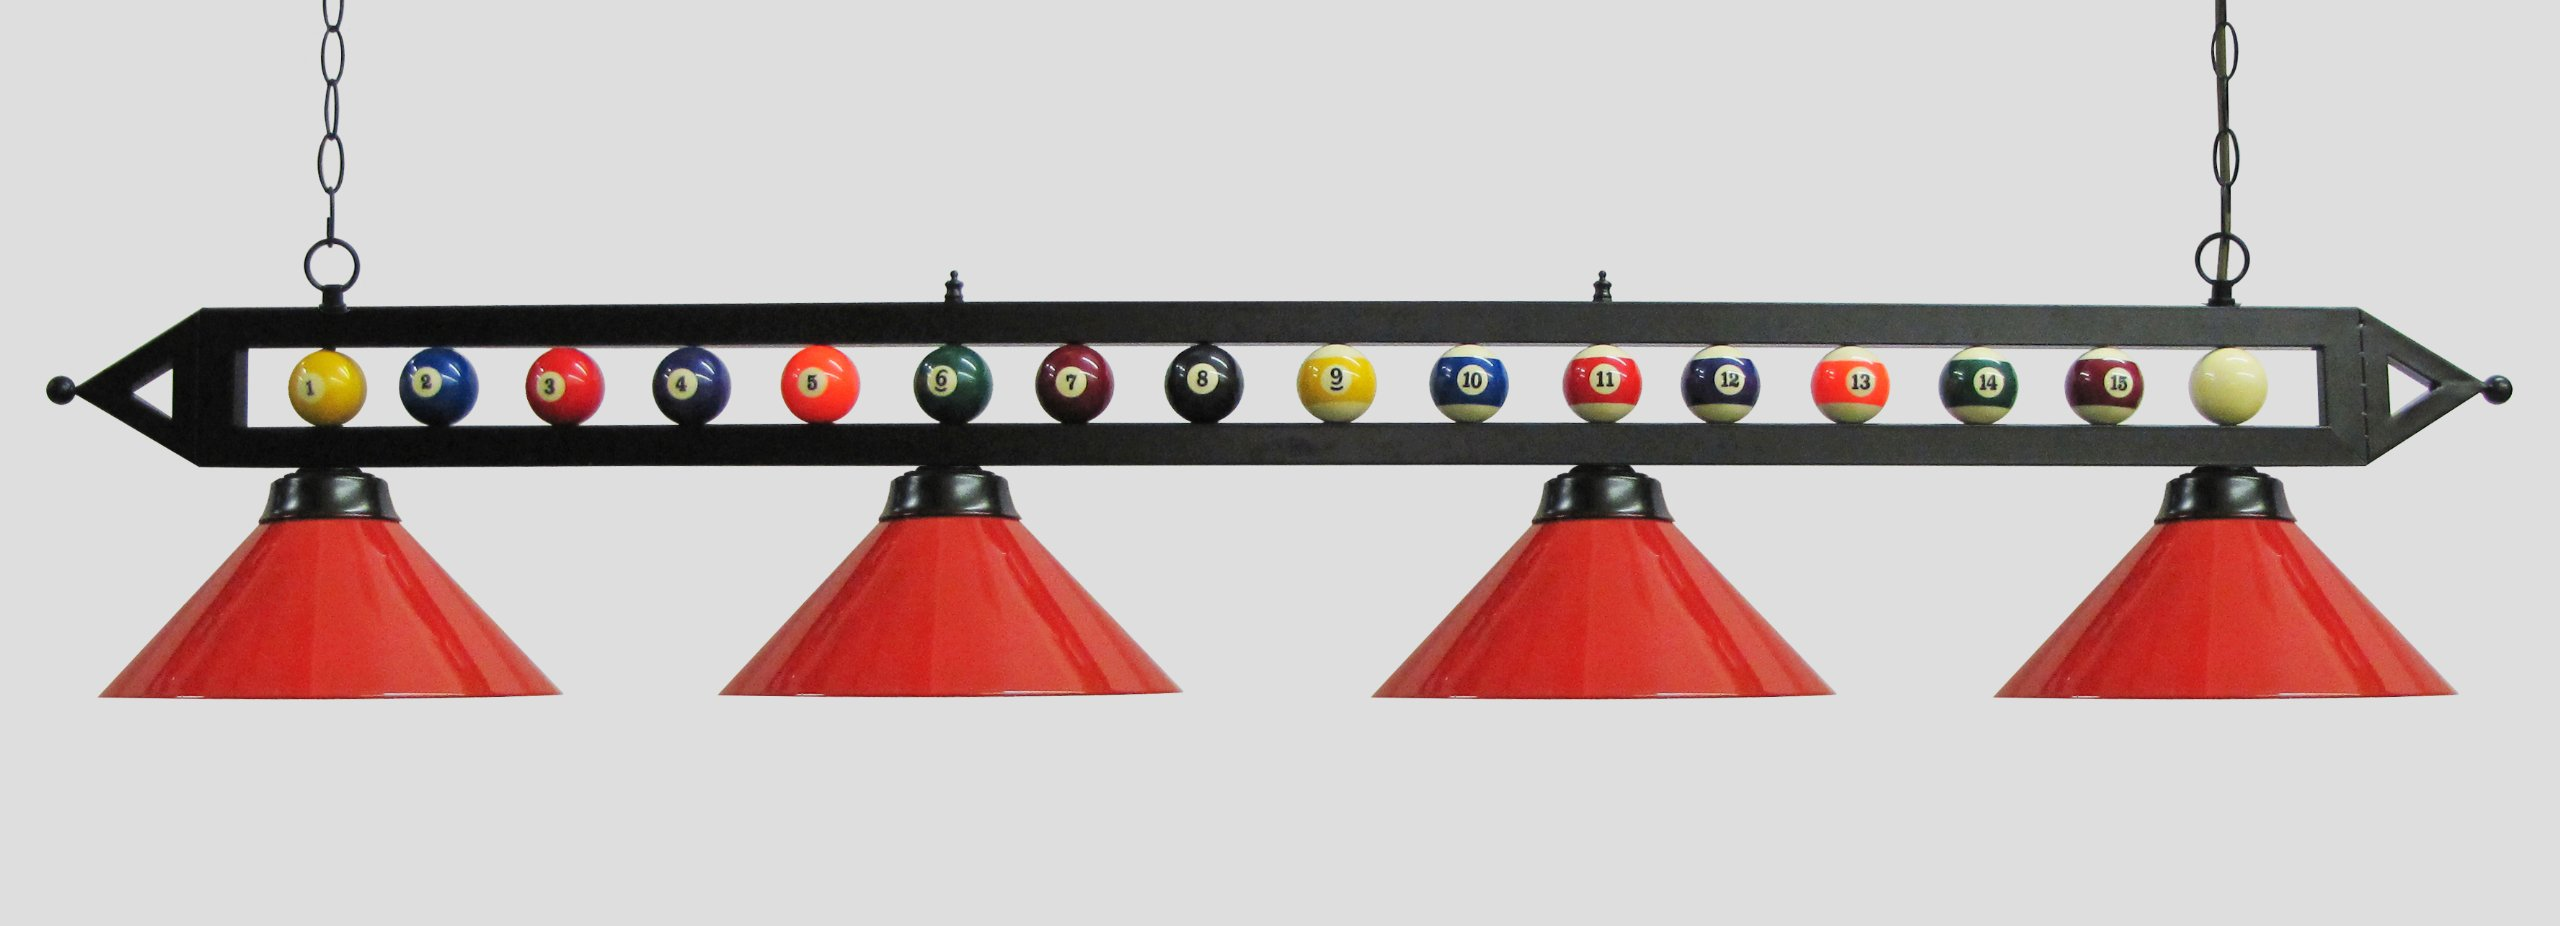 72'' Black Metal Ball Design Pool Table Light Billiard Lamp Choose Black, Red, Green Metal Shades or White Glass (Red Metal Shades)